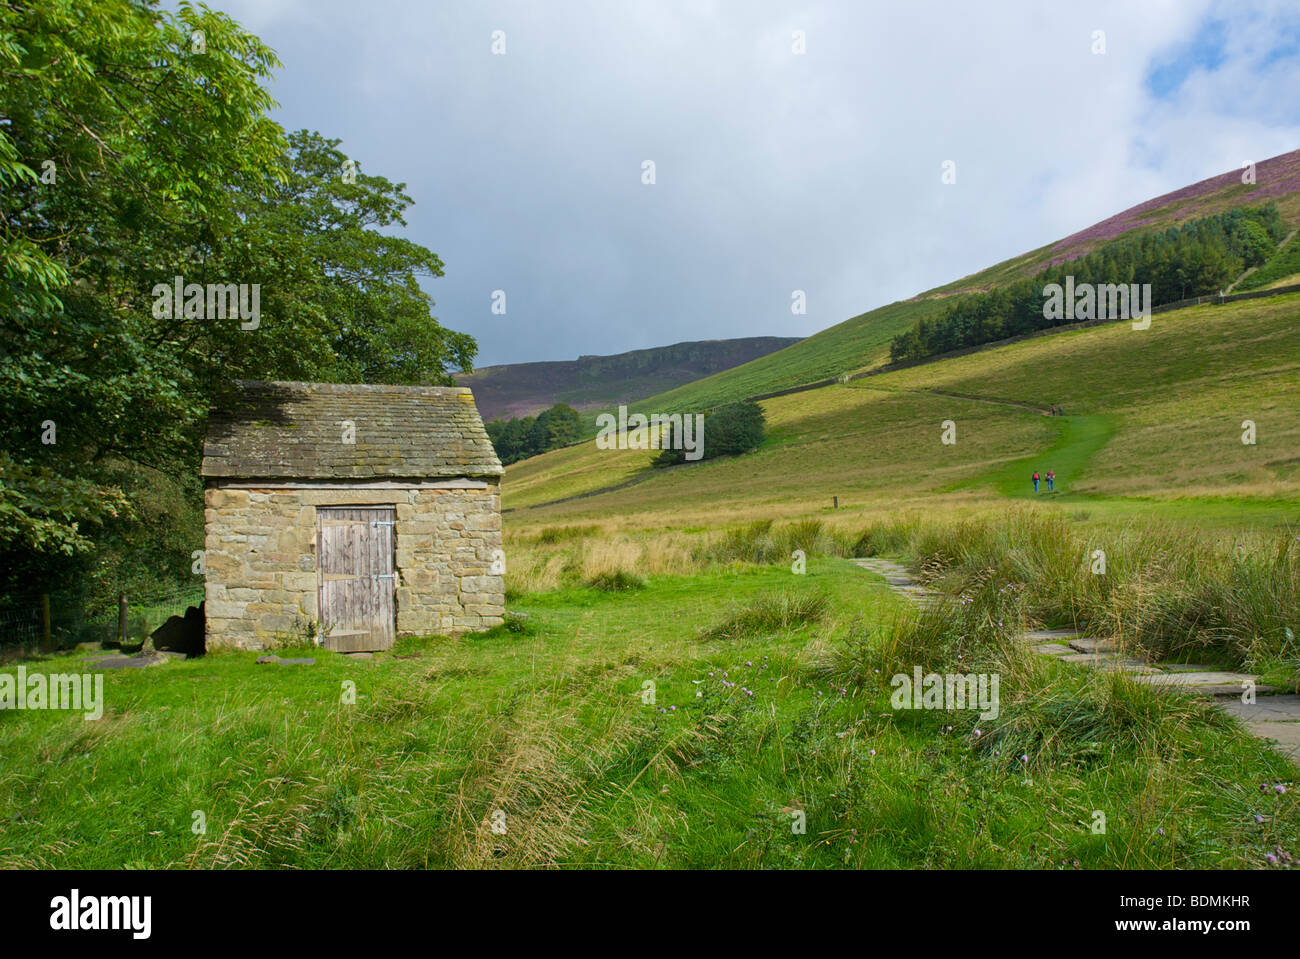 Walkers on path from Edale up to Ringing Roger, Kinder Scout, near Edale, Peak National Park, Derbyshire, England - Stock Image